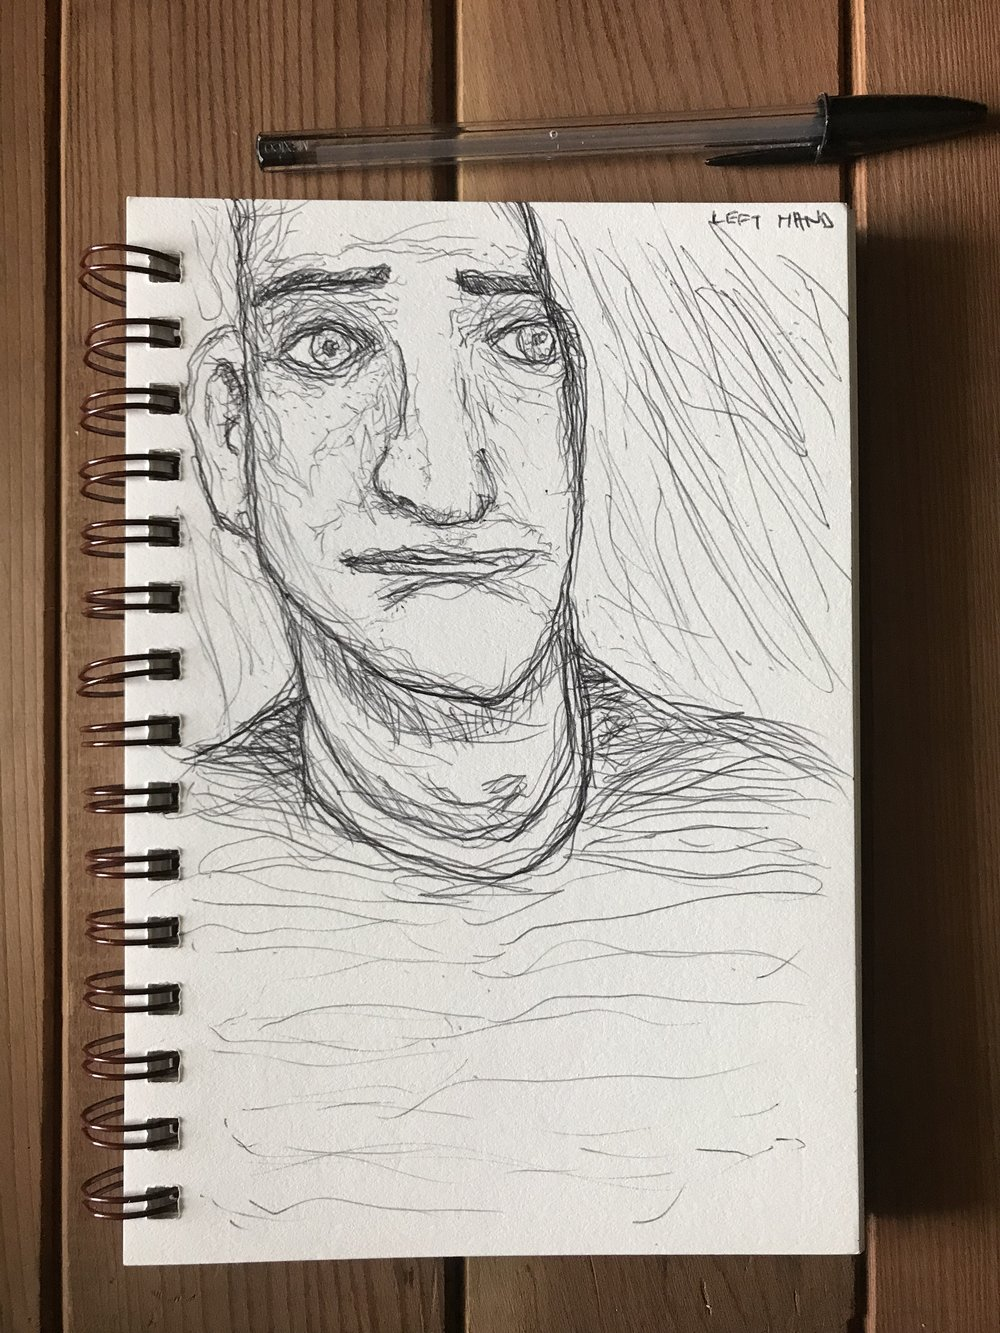 Decided to do a portrait from imagination, the proportions came out all strange, but very interesting.